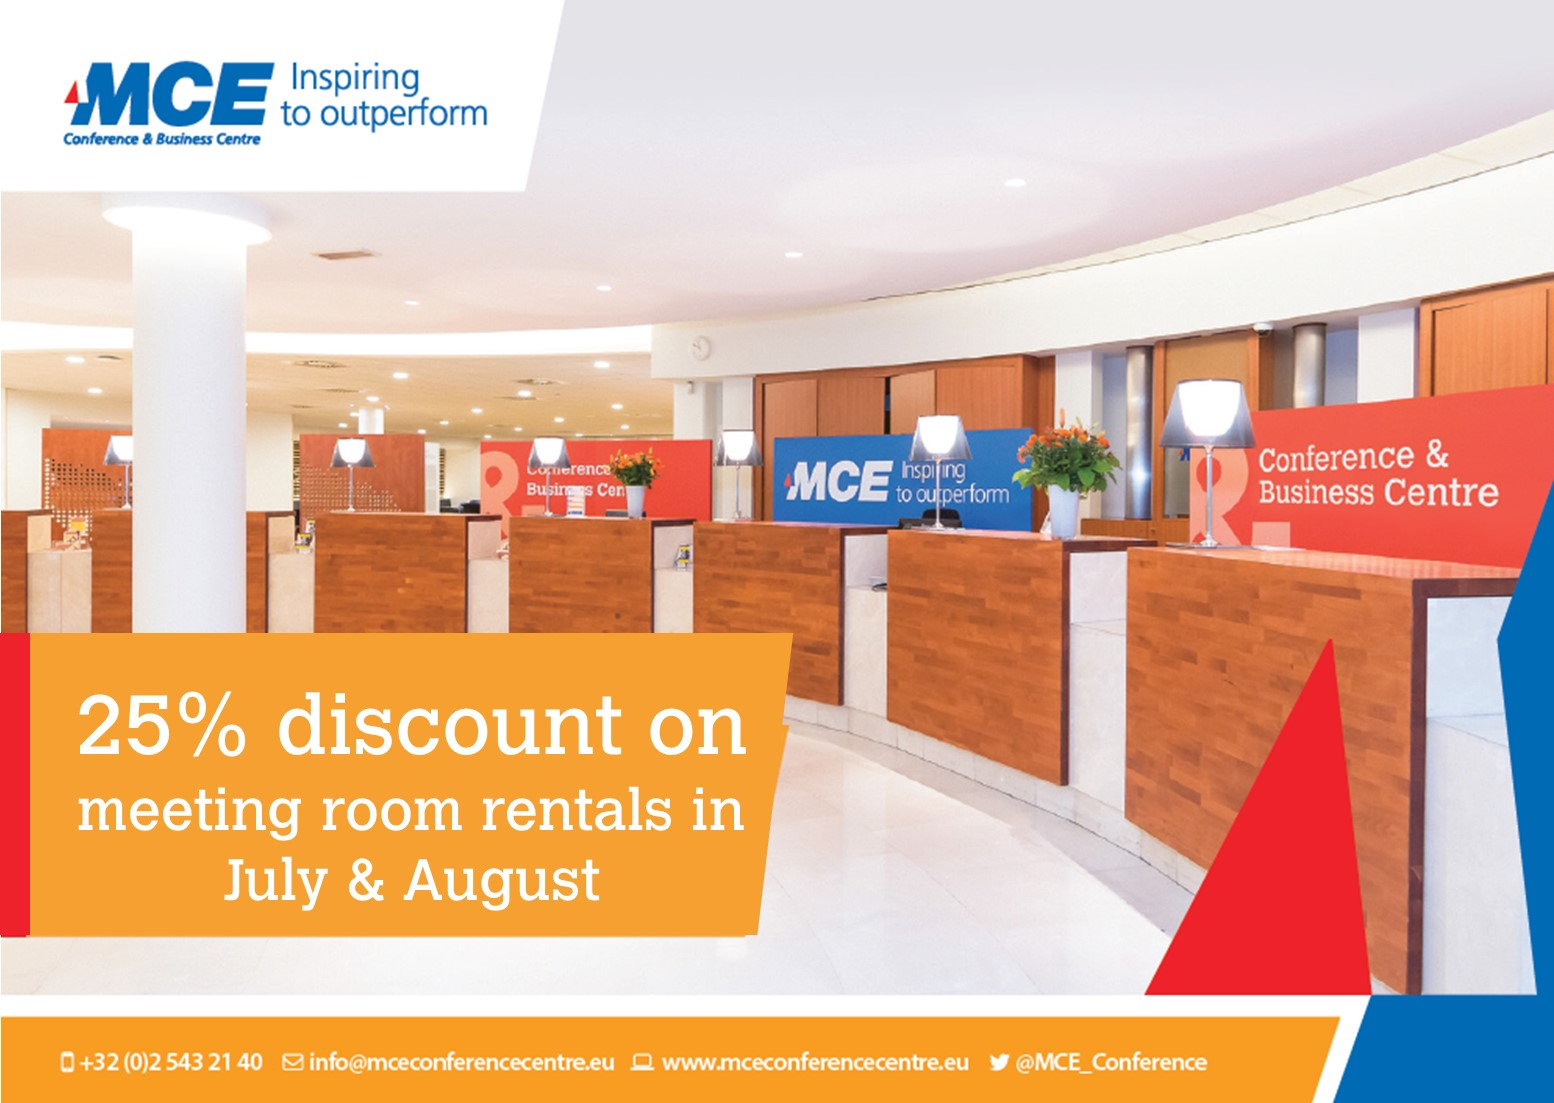 25% Discount on Meeting Room Rental in July and August 2018